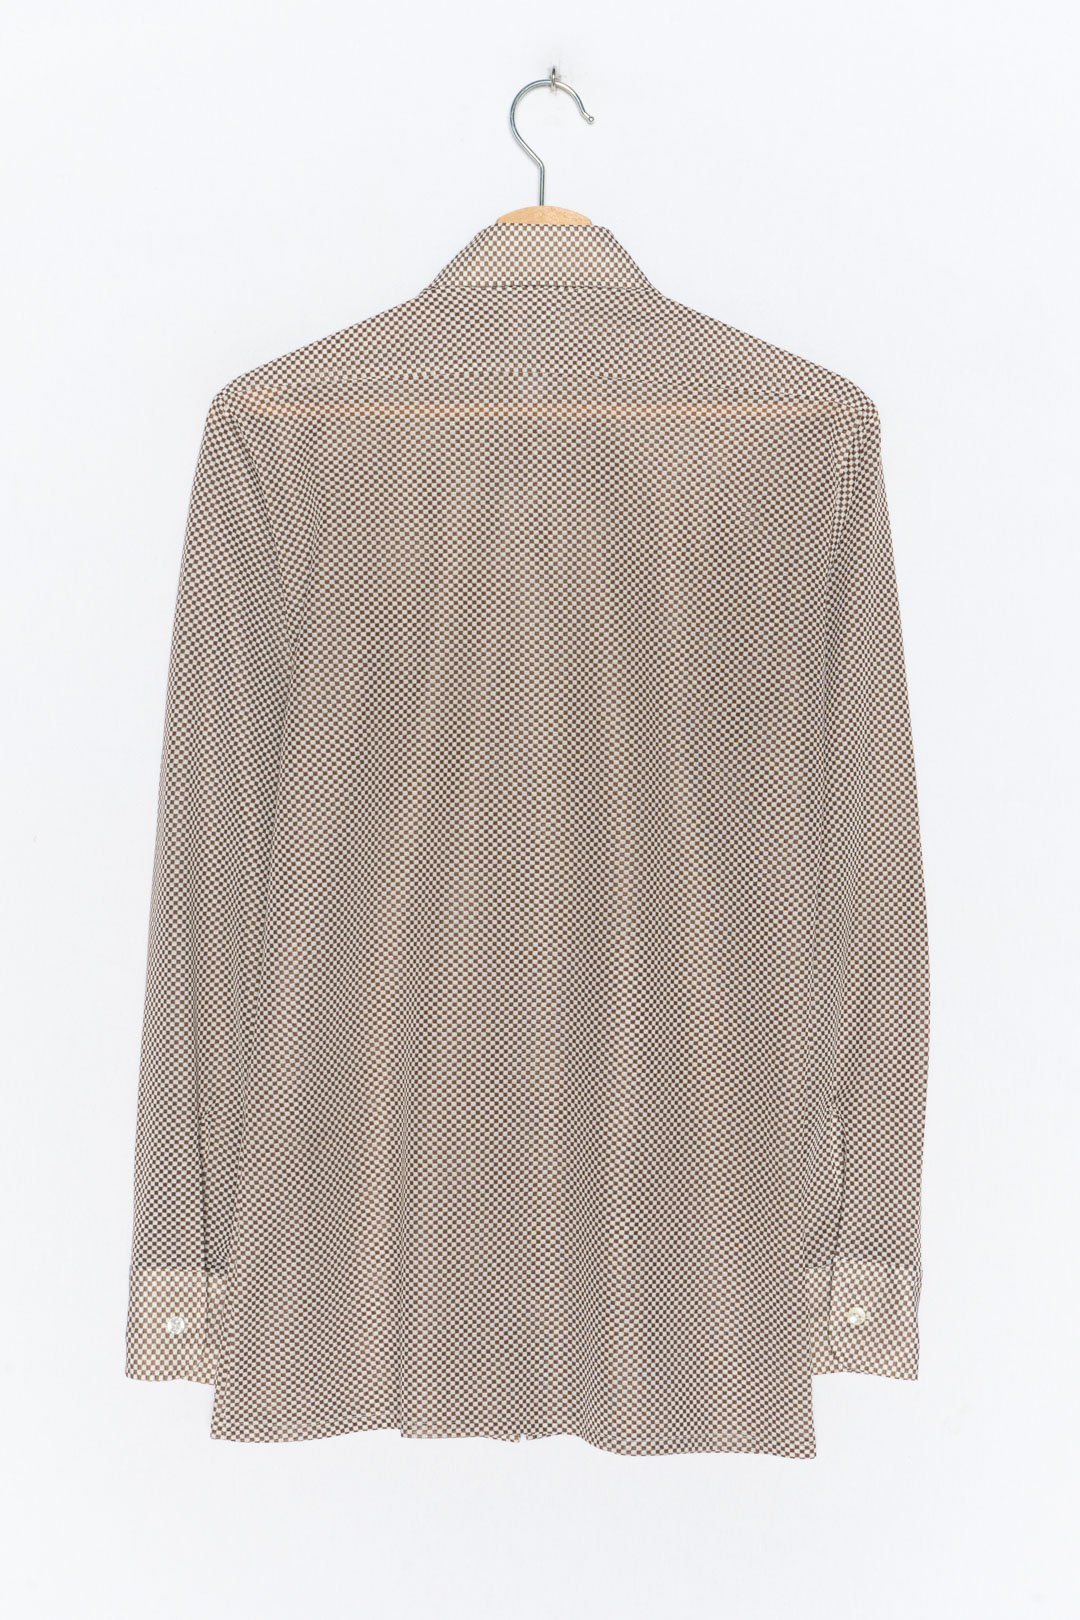 Brown White Blouse Long Sleeve M - VinoKilo.com